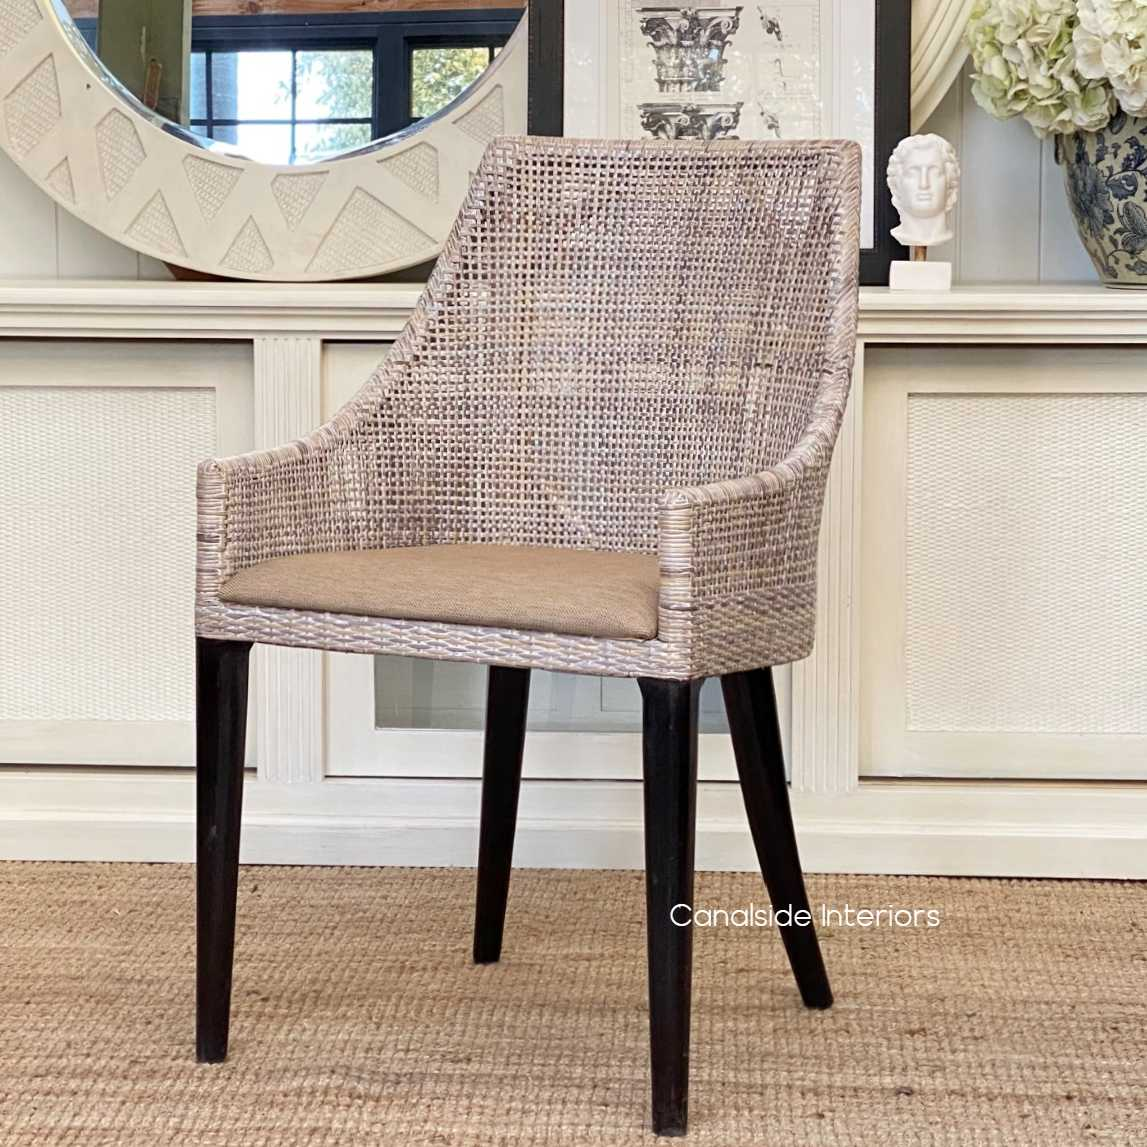 Wickham Dining Chairs Greywash with upholstered seat  CHAIRS, HAMPTONS Style, PLANTATION Style, CHAIRS Dining, PLANTATION STYLE